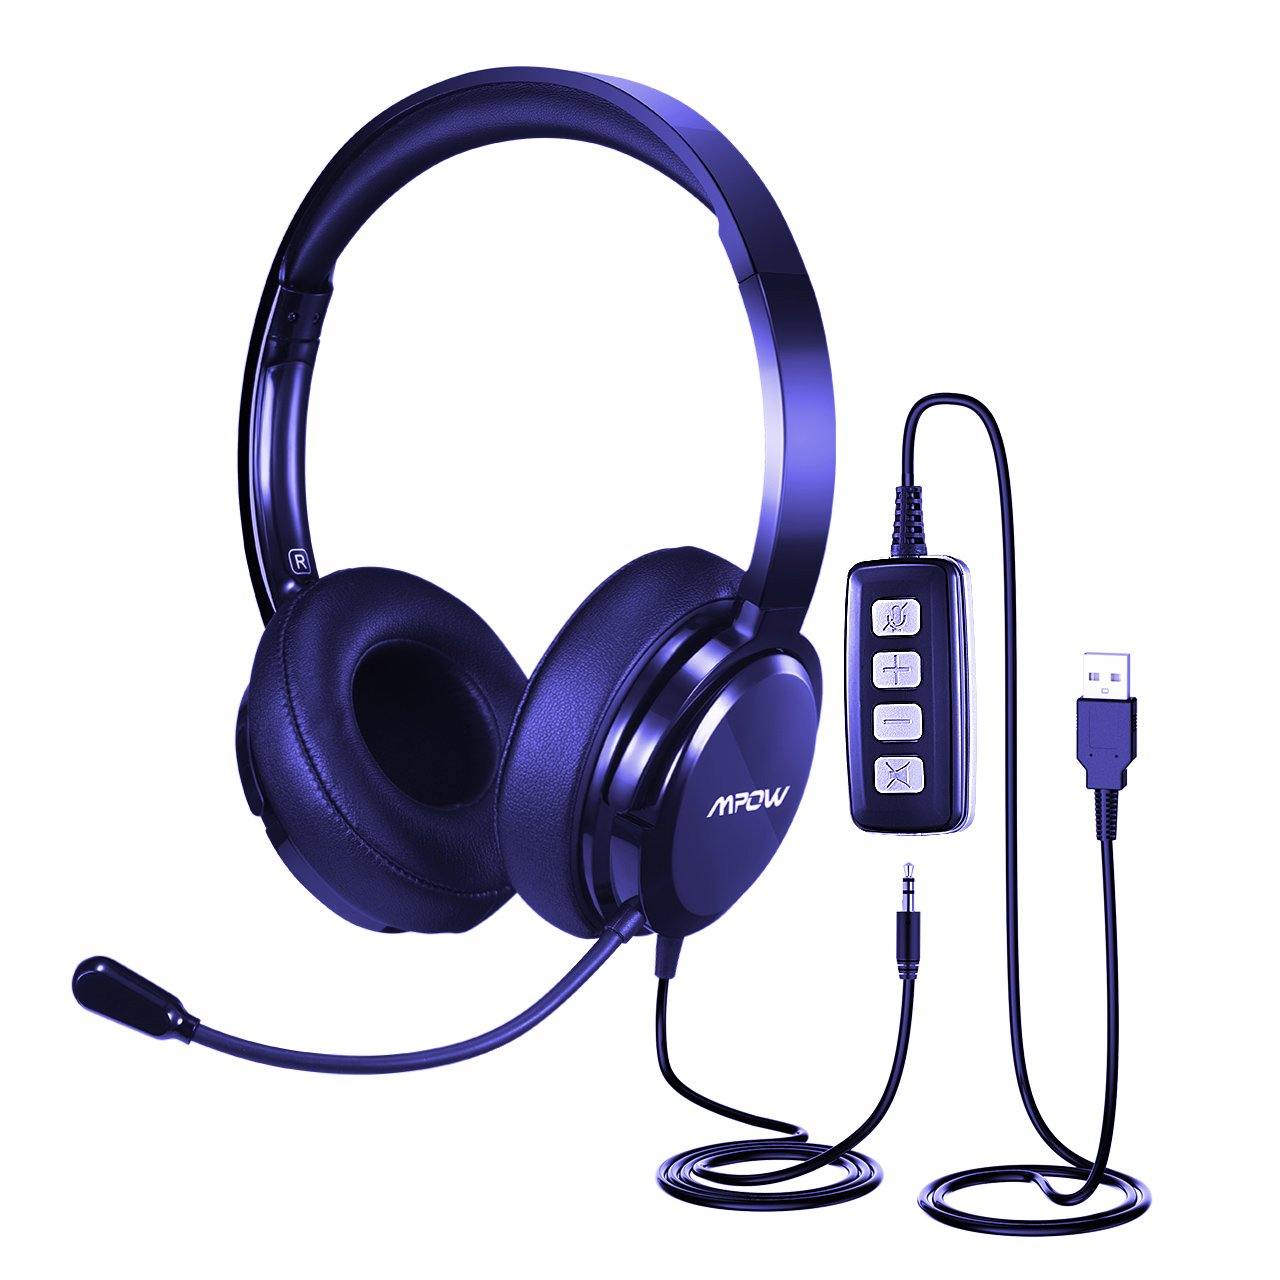 Mpow Wireless Office Monaural Headset/ Truck Driver Headset, [Upgrade Version] V4.1 Bluetooth Over the Head Earpiece with Noise Reduction Mic, Voice Command for Phones, VoIP, Skype, Call Center MPBH078AB